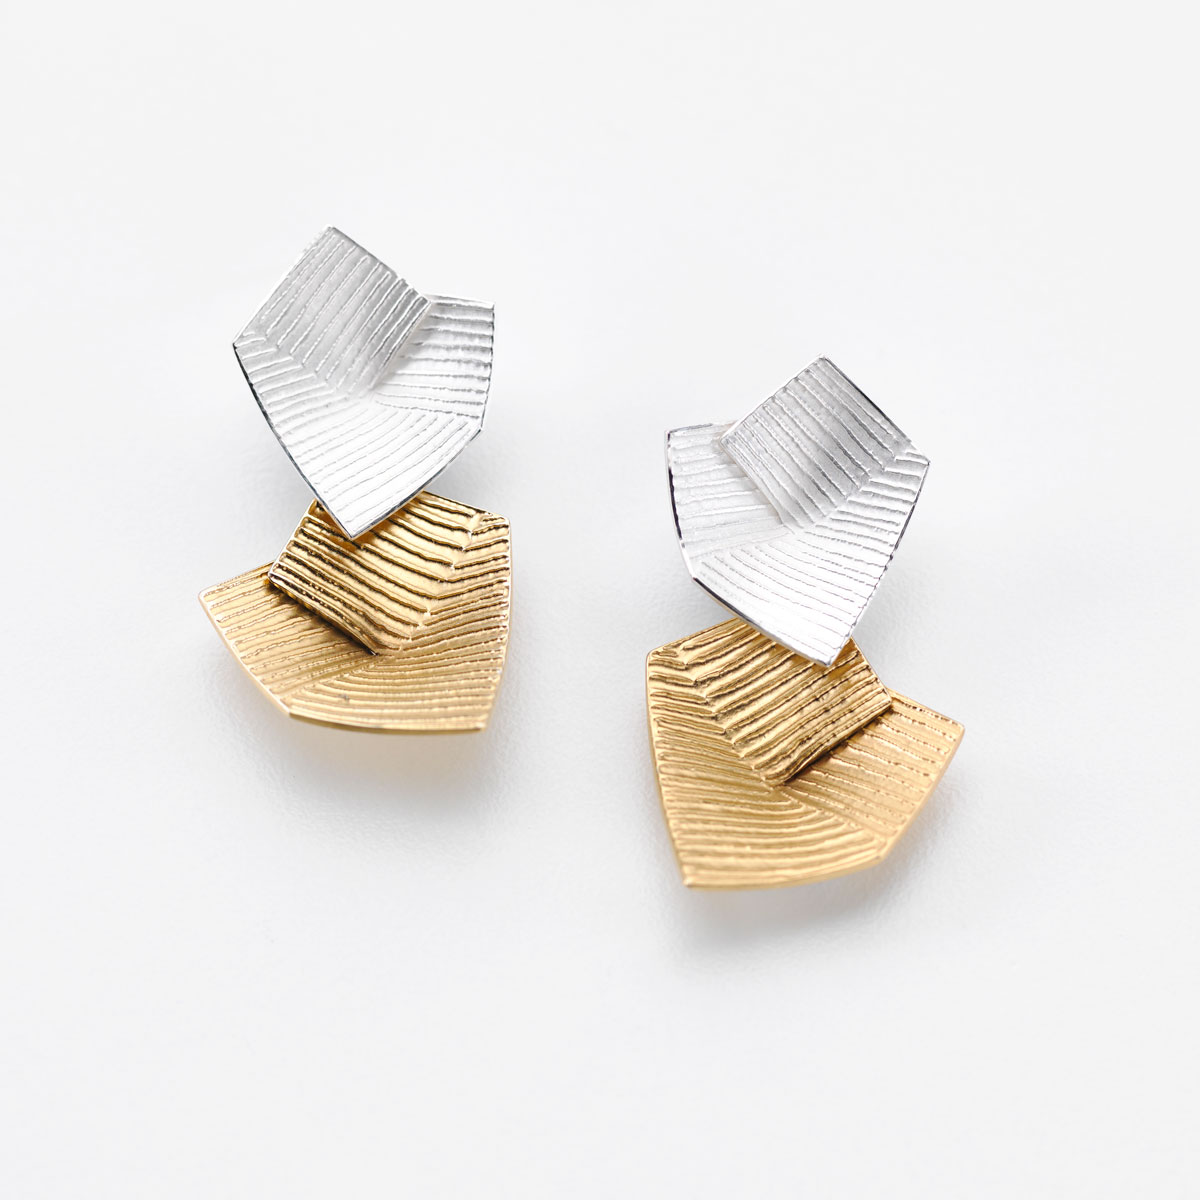 'Lines in Motion' Silver and Gold Drop Earrings